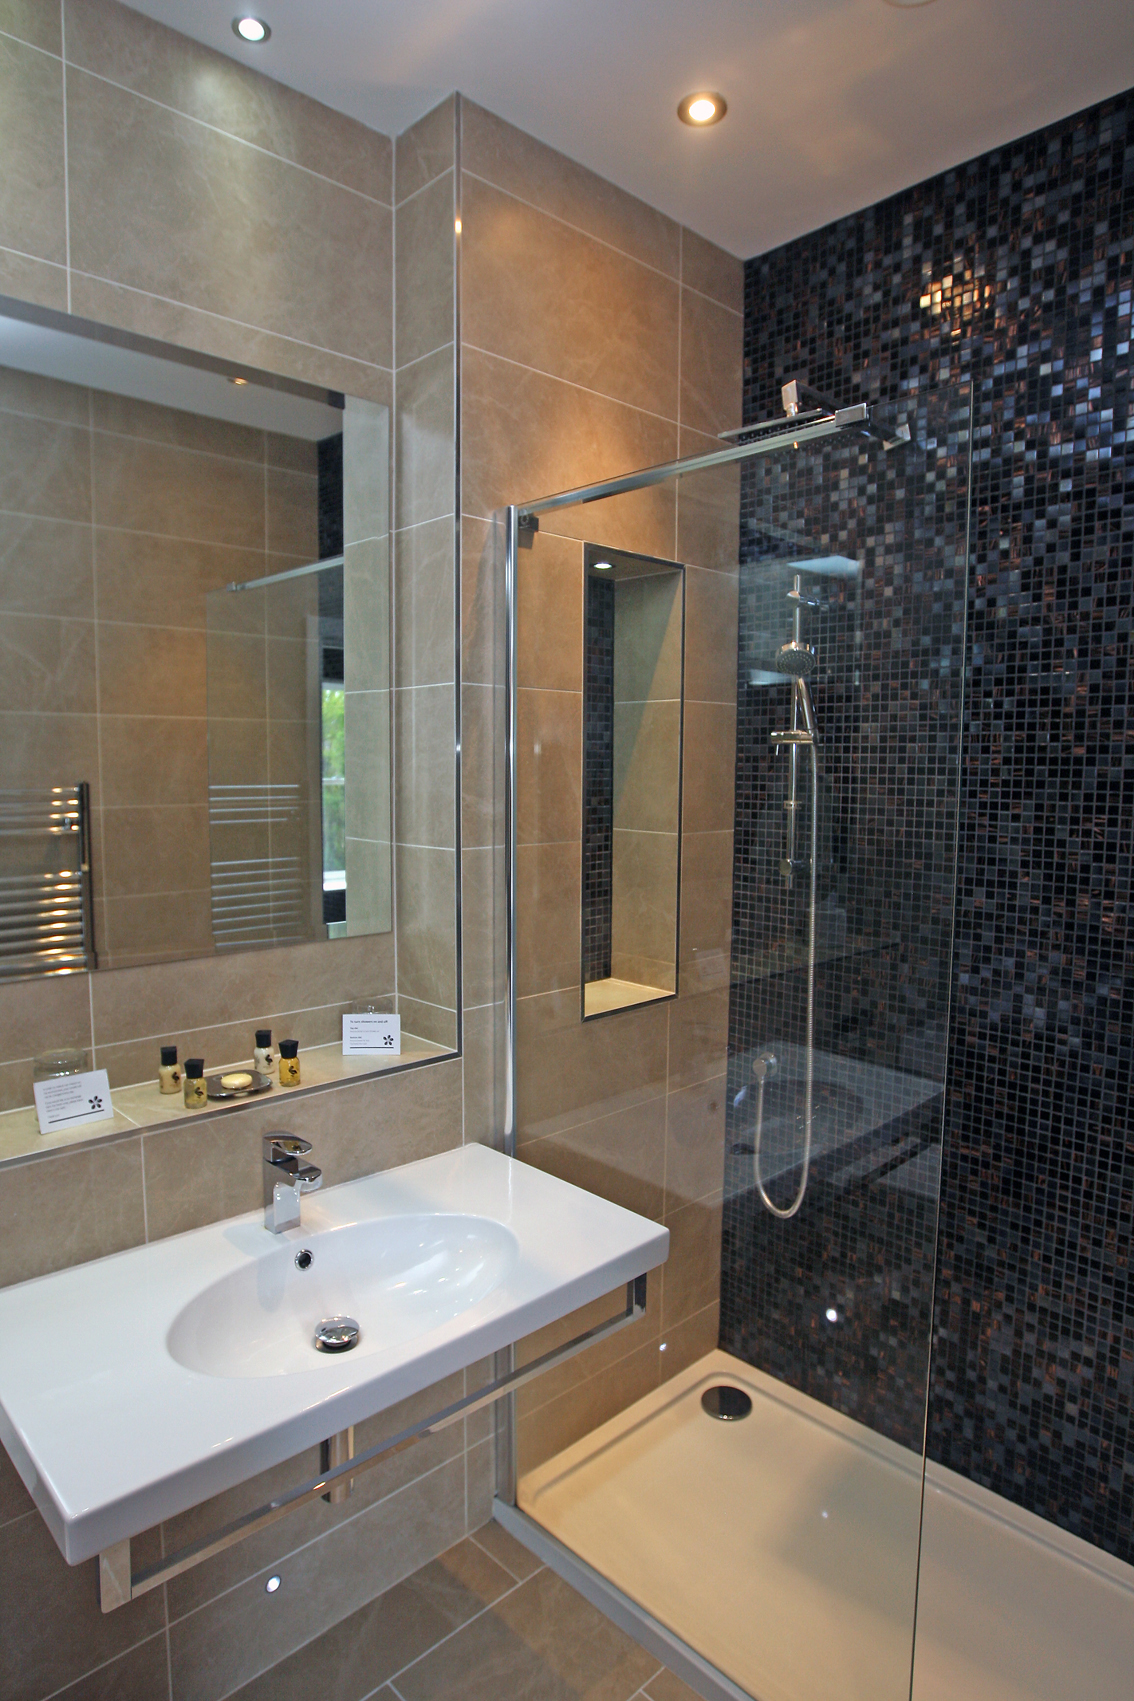 LlawnrocRm11k 16/06/2016 Room 11, a generous dual aspect suite room with sea views and a large bathroom with a separate shower and bath. This suite can be made as a double or twin room.